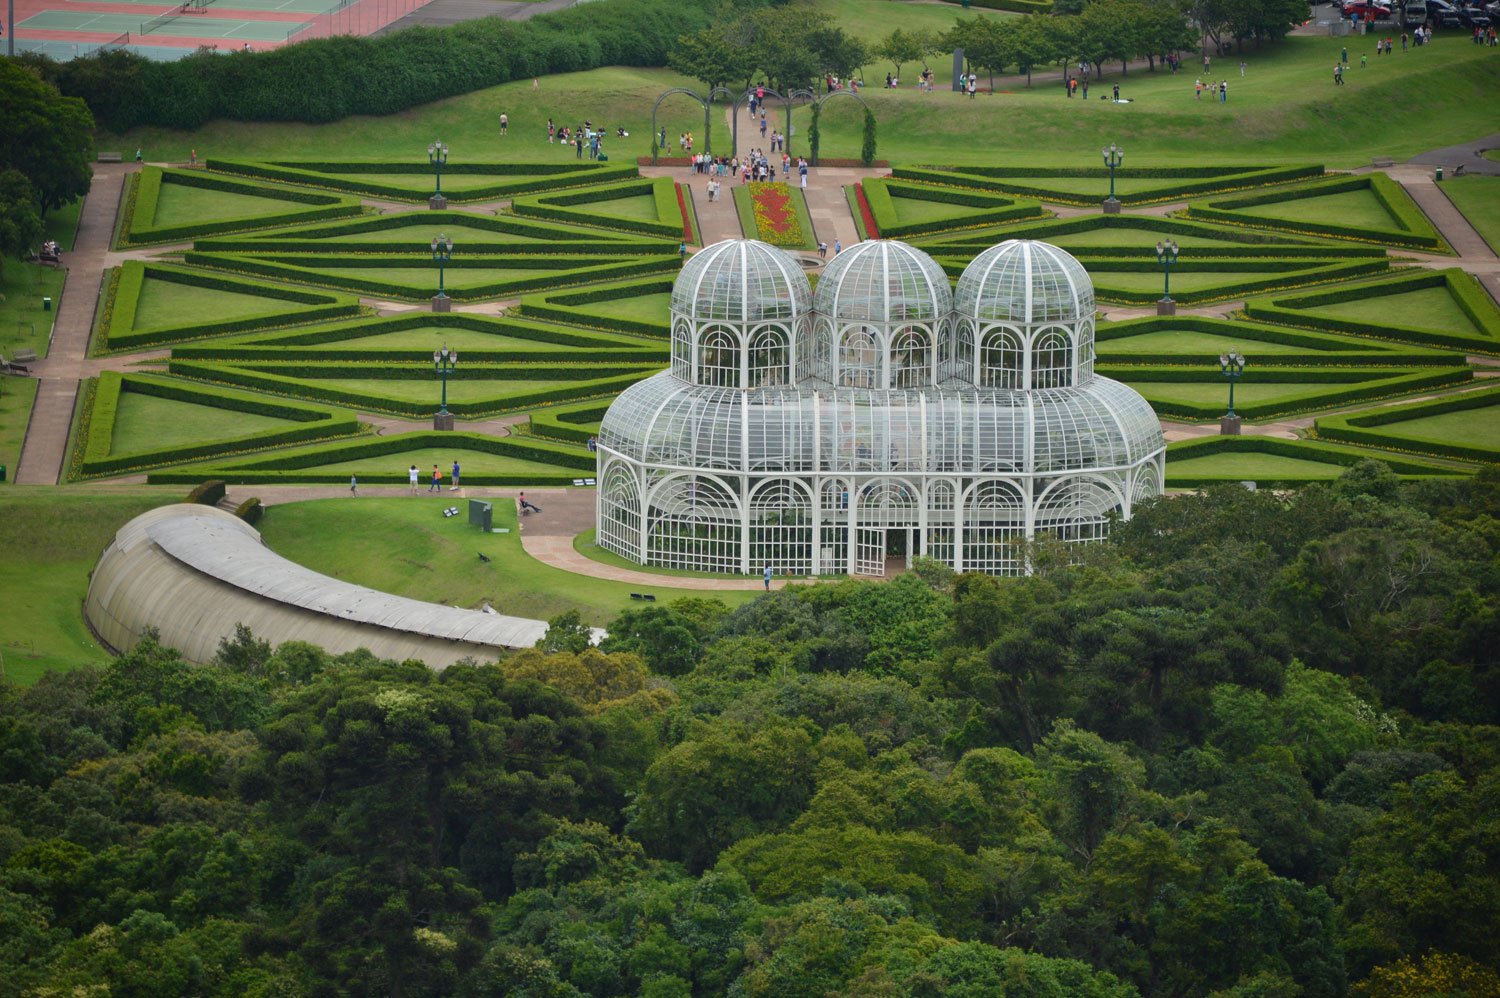 The Botanical Gardens in the city of Curitiba was created in the style of French gardens, with fountains, lakes and an art nouveau style greenhouse, which lights up at night.